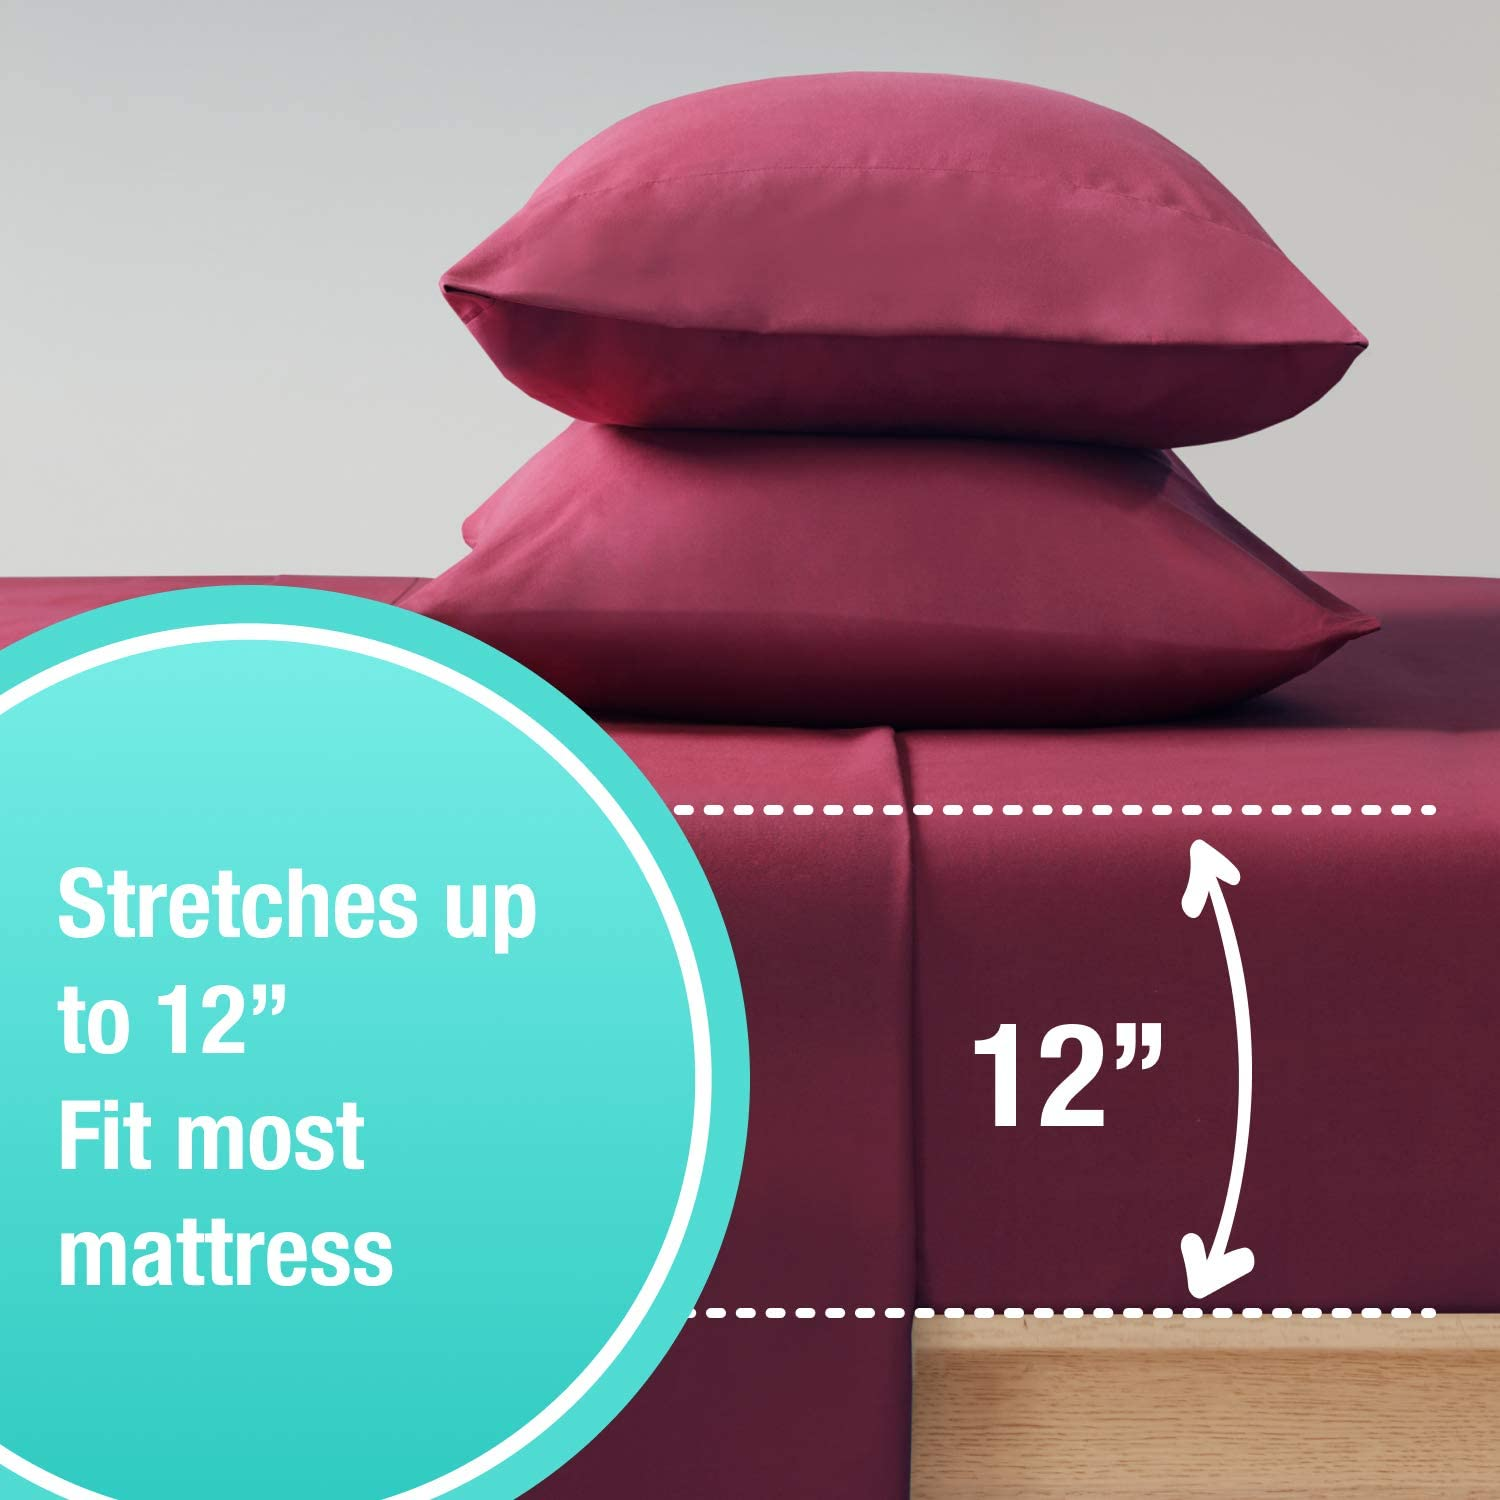 1 Fitted with Deep Pocket Fits Most Mattress Soft Brushed 1800 Microfiber Blend Bed Sheet Wrinkle 1 Flat Shrinking /& Color Fade Resistant 1 Pillowcase Twin XL Bed Sheets Set 3 Piece